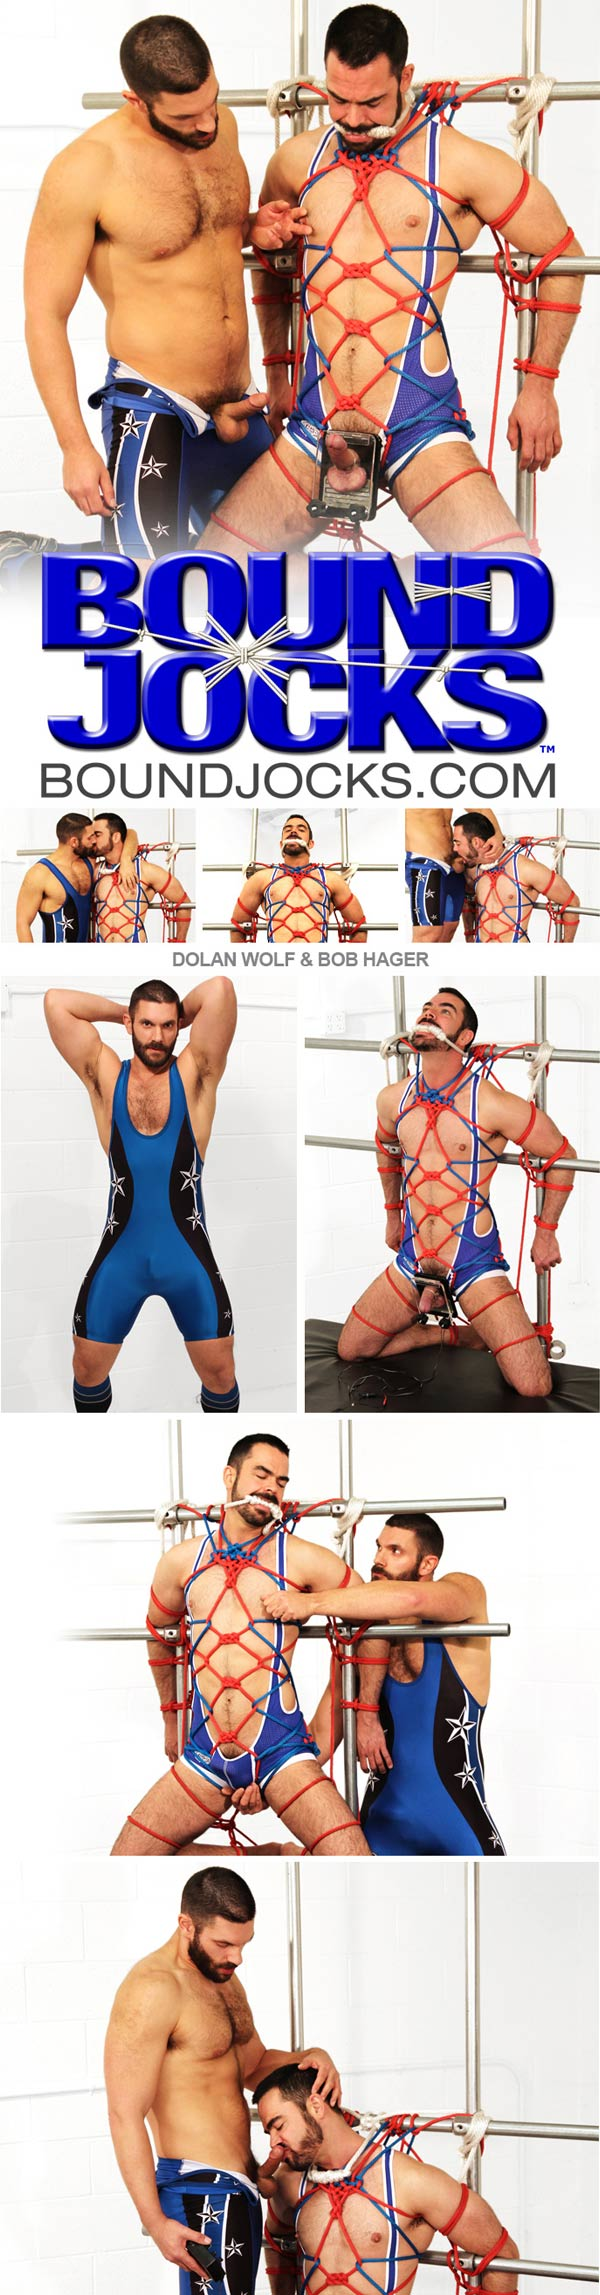 Dolan Wolf & Bob Hager at BoundJocks.com